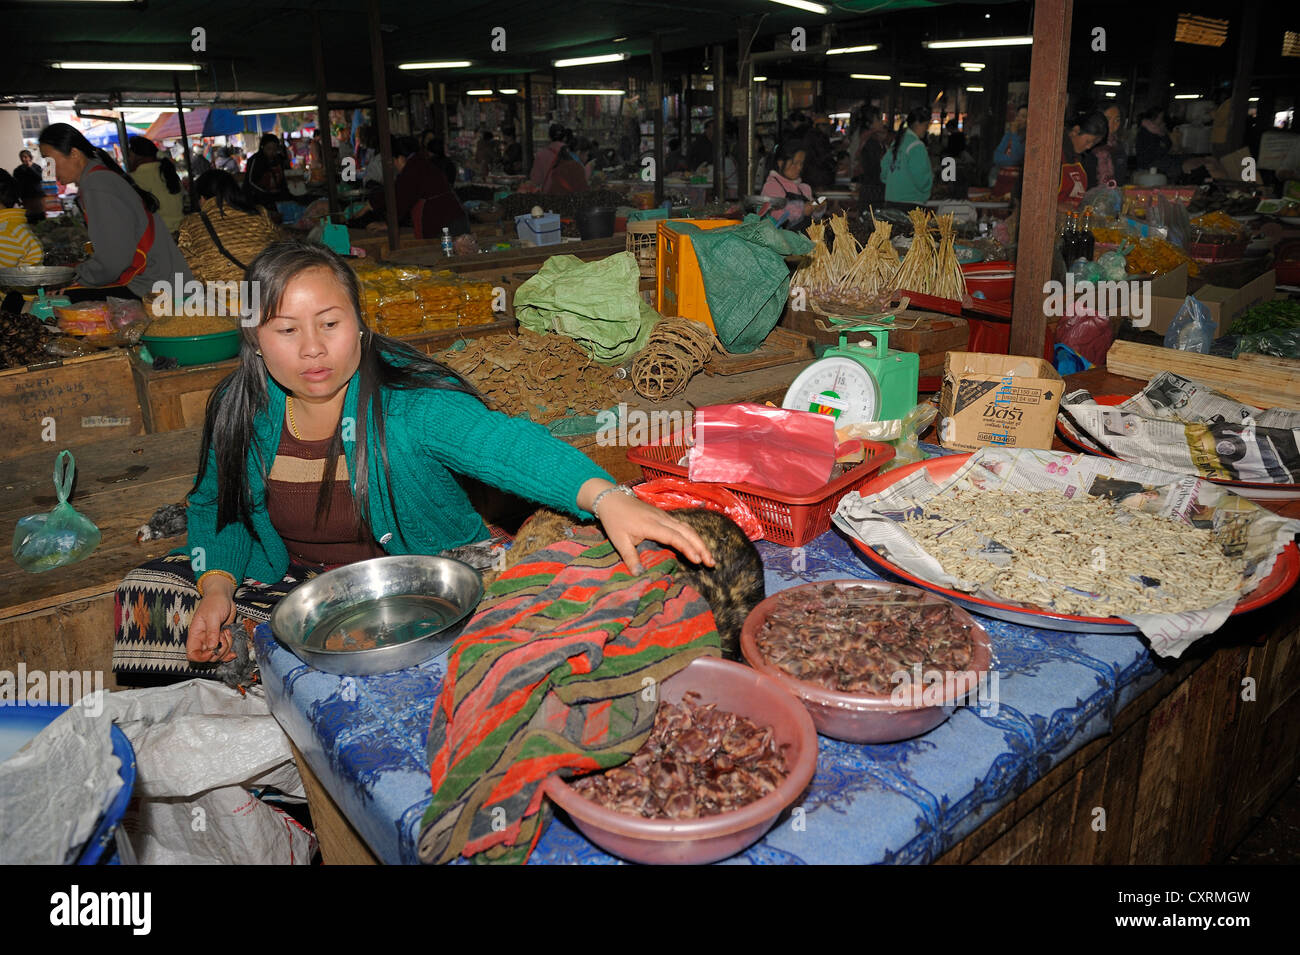 Sales of songbirds as meat, woman trying to cover her goods with a cloth, because the sale is illegal, weekly market - Stock Image